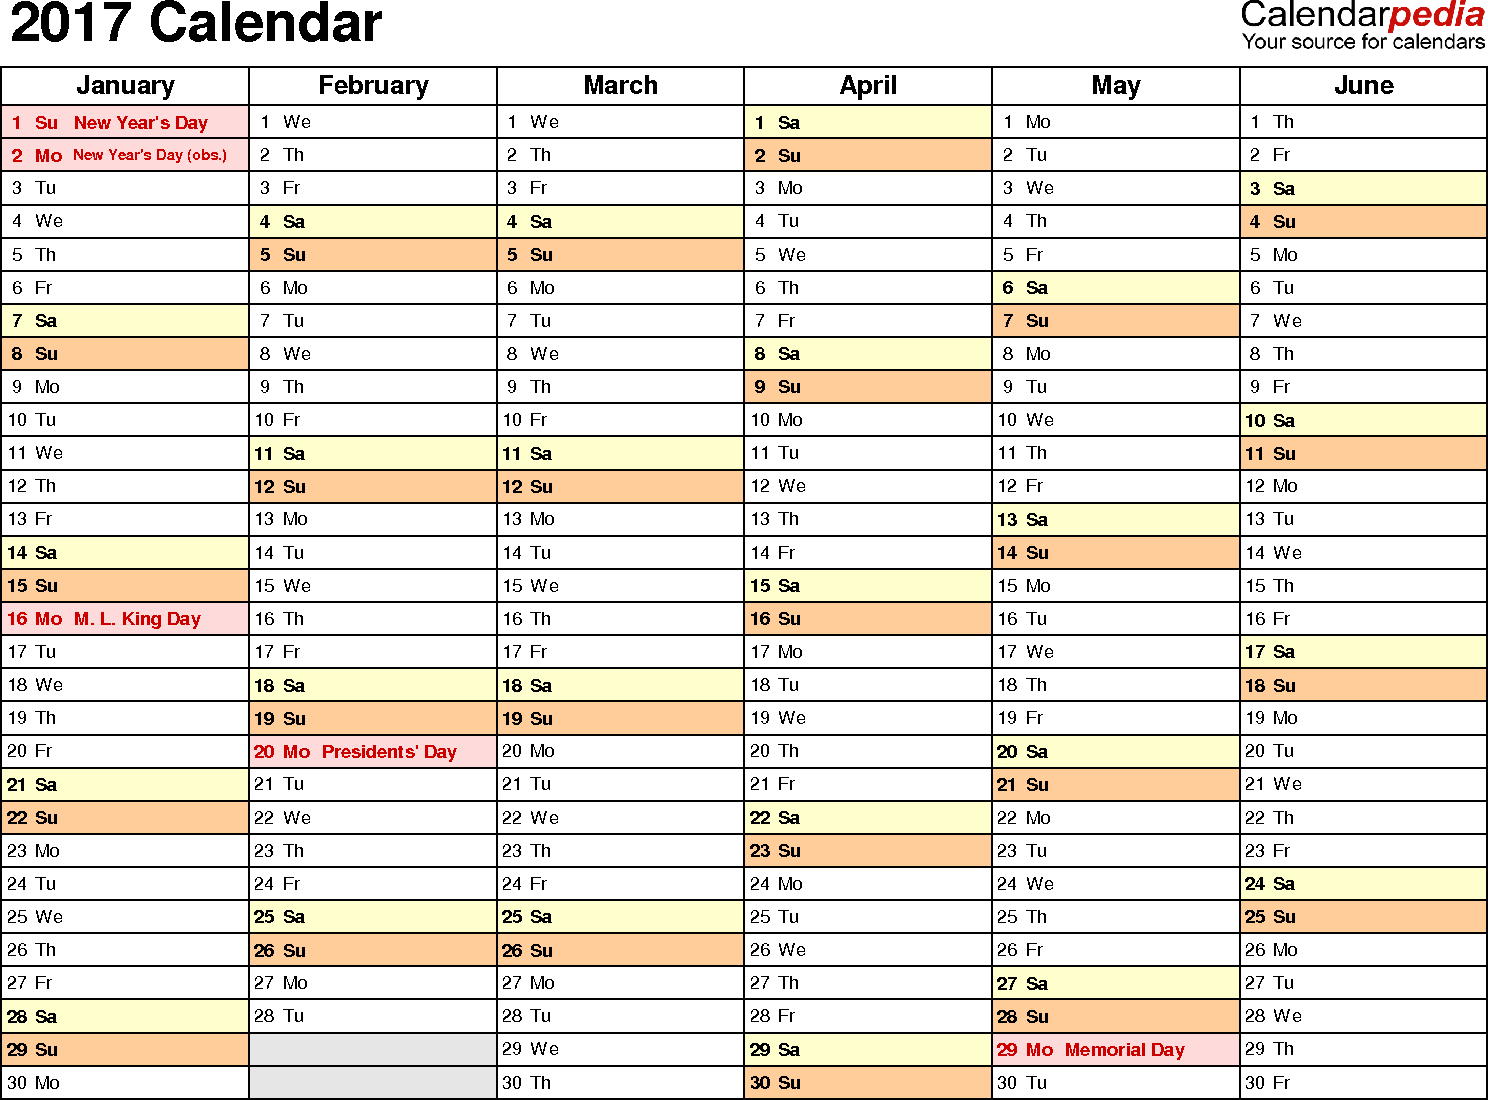 Ediblewildsus  Stunning  Calendar  Download  Free Printable Excel Templates Xls With Lovable Template   Calendar For Excel Months Horizontally  Pages Landscape Orientation With Divine Excel Spreadsheet Software Also Excel Vba New Workbook In Addition Excel Ener And Program Excel As Well As Free Gantt Chart Template Excel  Additionally Excel T Value From Calendarpediacom With Ediblewildsus  Lovable  Calendar  Download  Free Printable Excel Templates Xls With Divine Template   Calendar For Excel Months Horizontally  Pages Landscape Orientation And Stunning Excel Spreadsheet Software Also Excel Vba New Workbook In Addition Excel Ener From Calendarpediacom